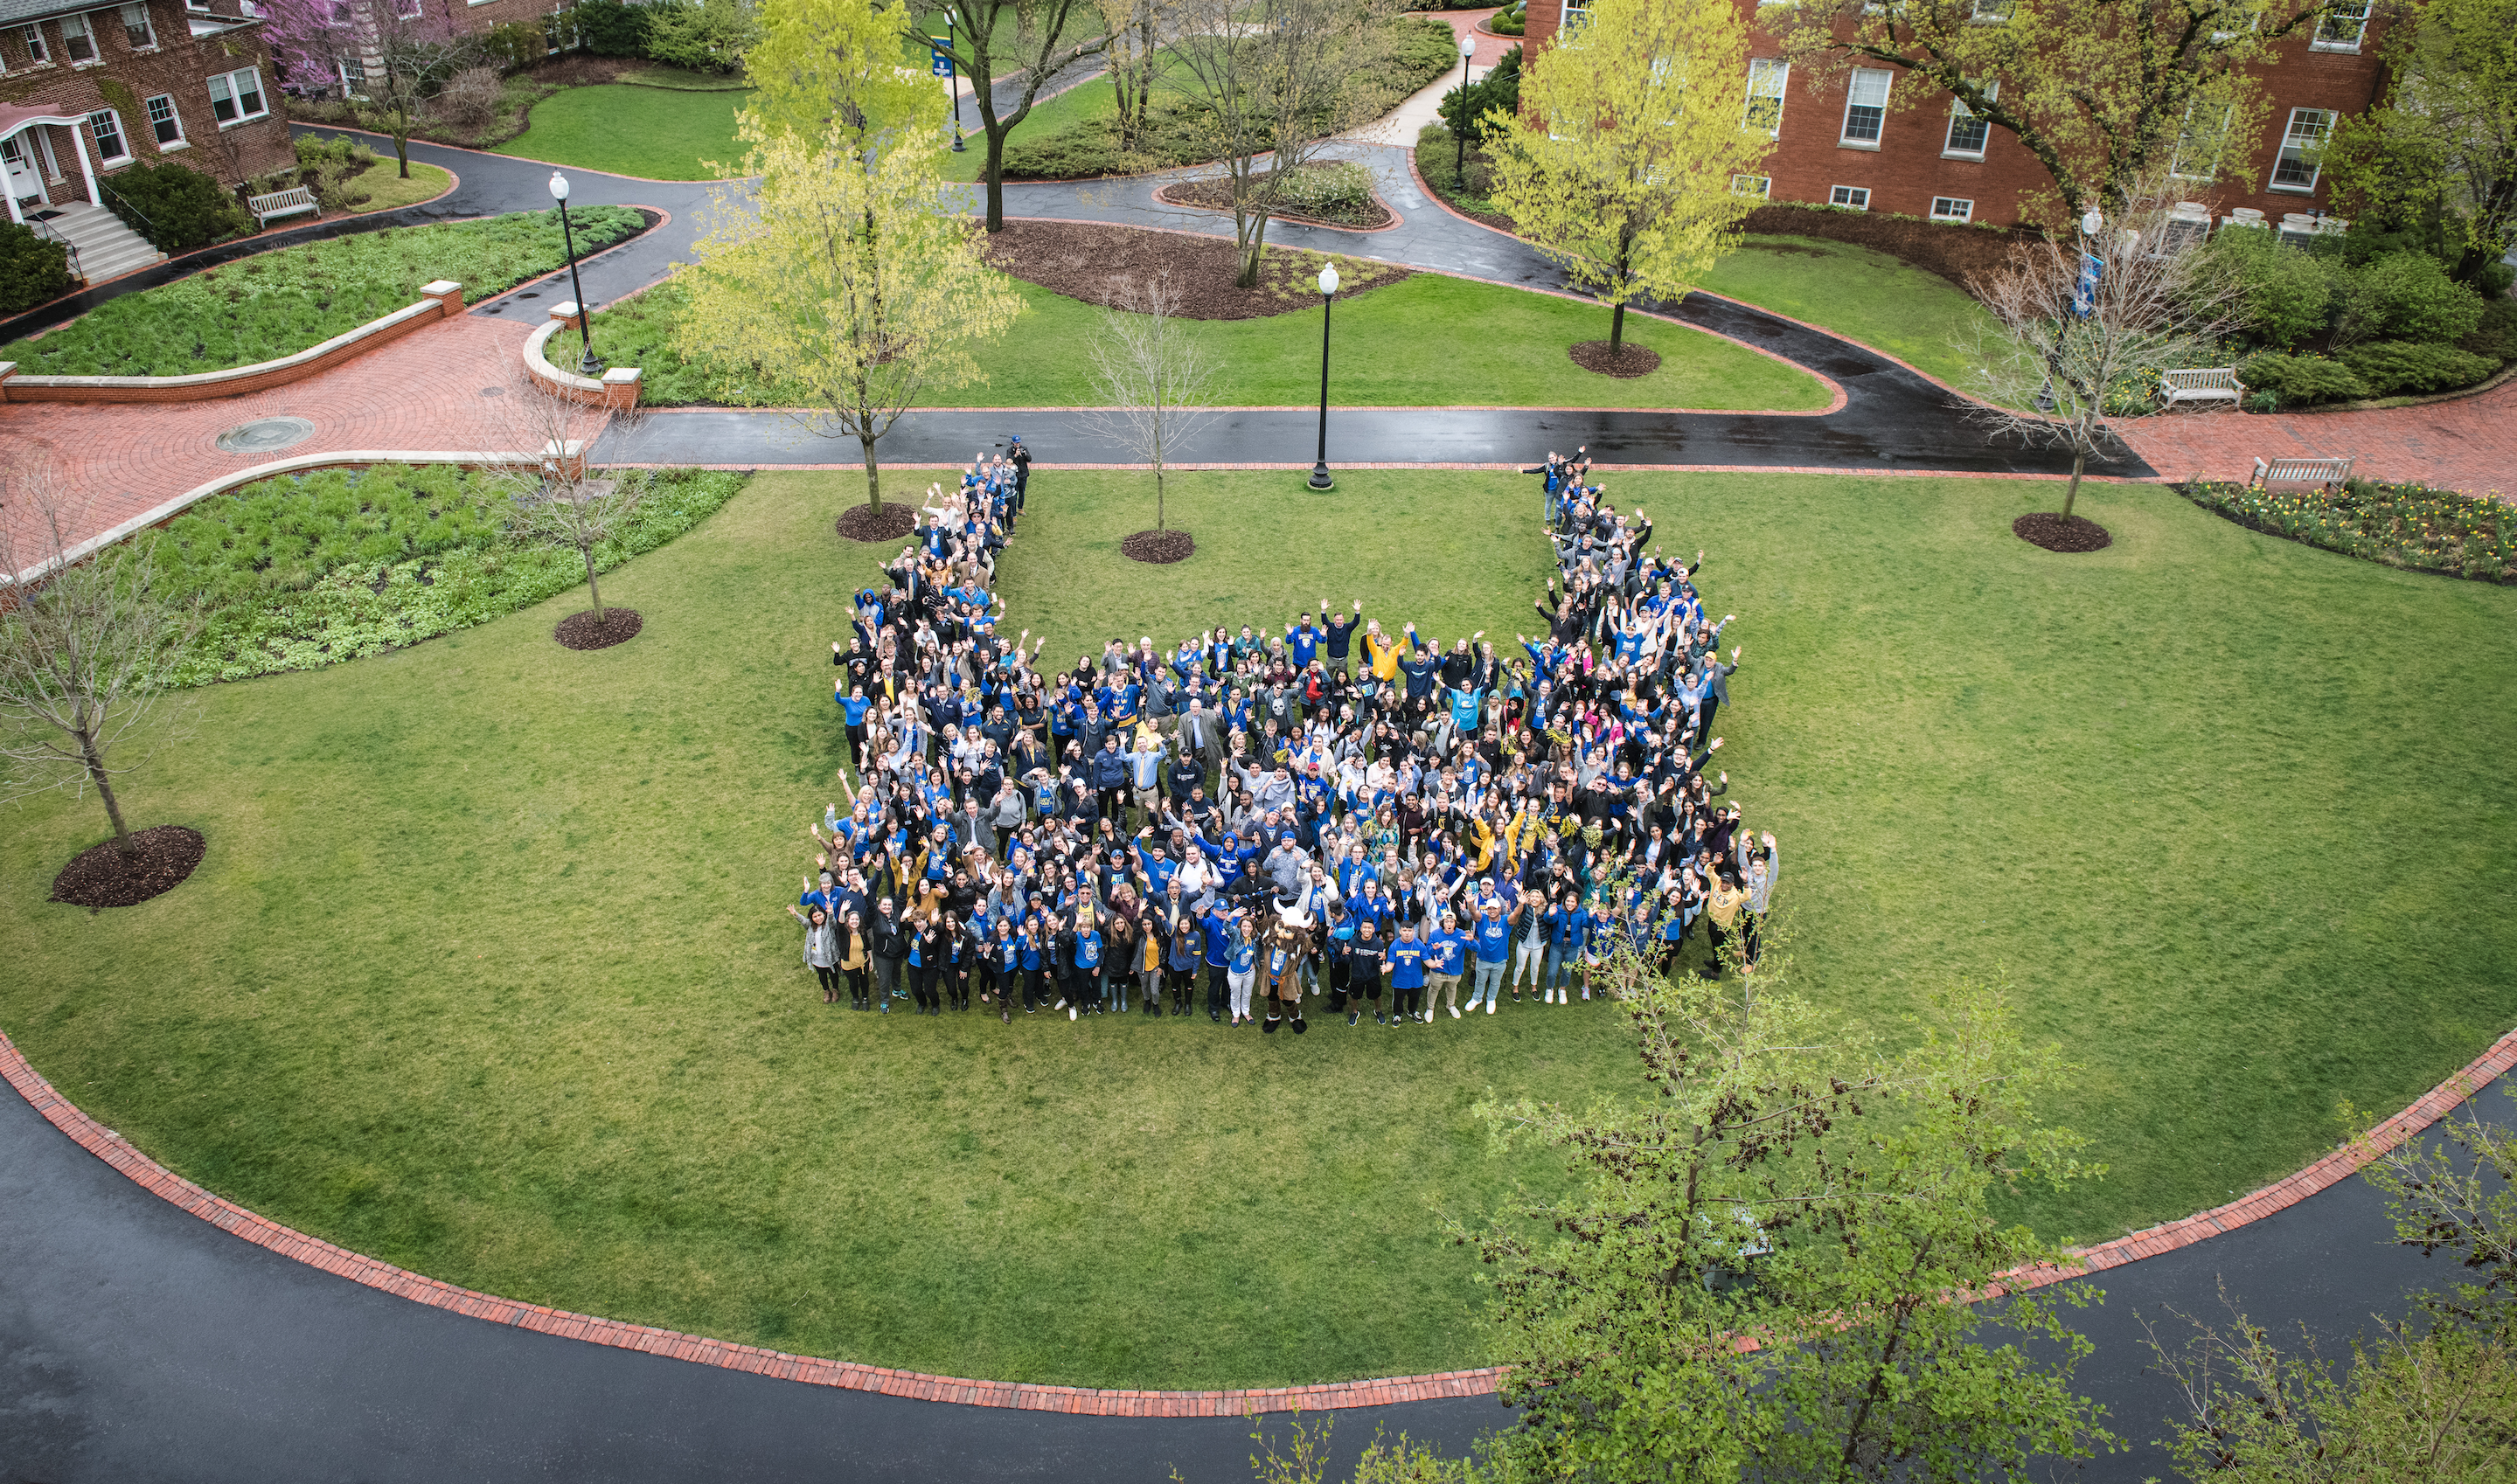 Campus Life and Services featured image background